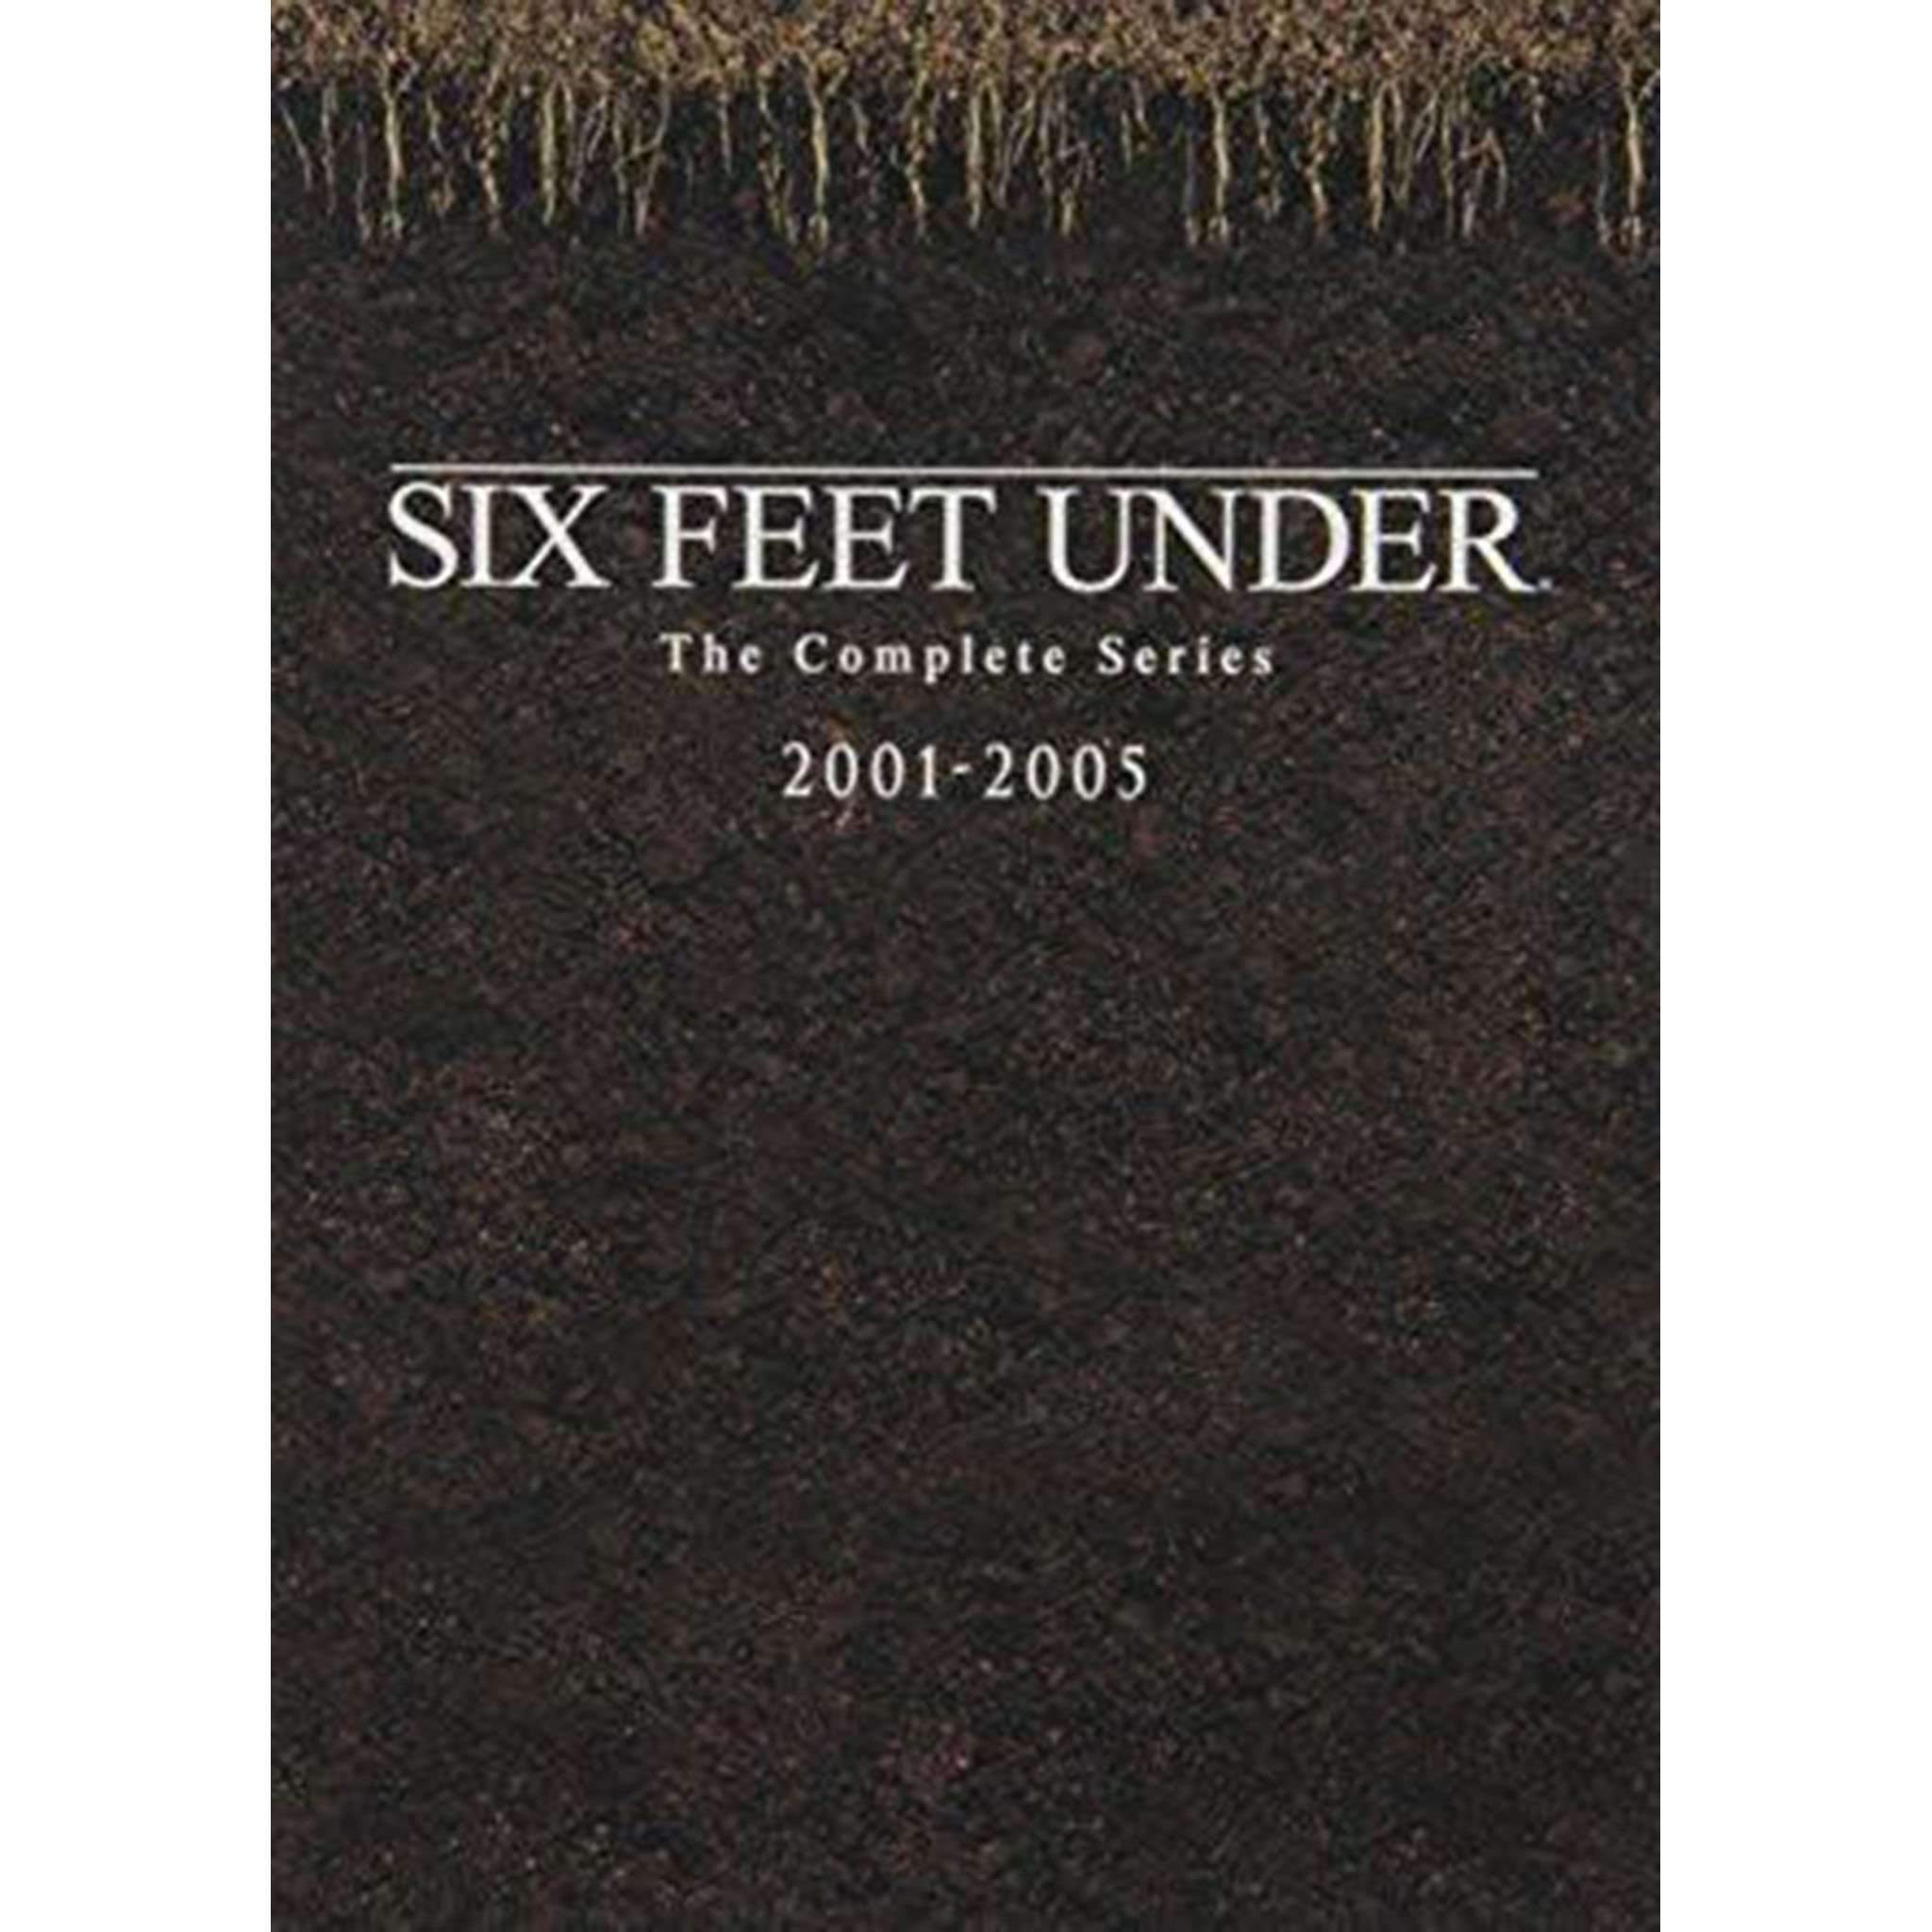 Six Feet Under DVD Complete Series Box Set HBO DVDs & Blu-ray Discs > DVDs > Box Sets